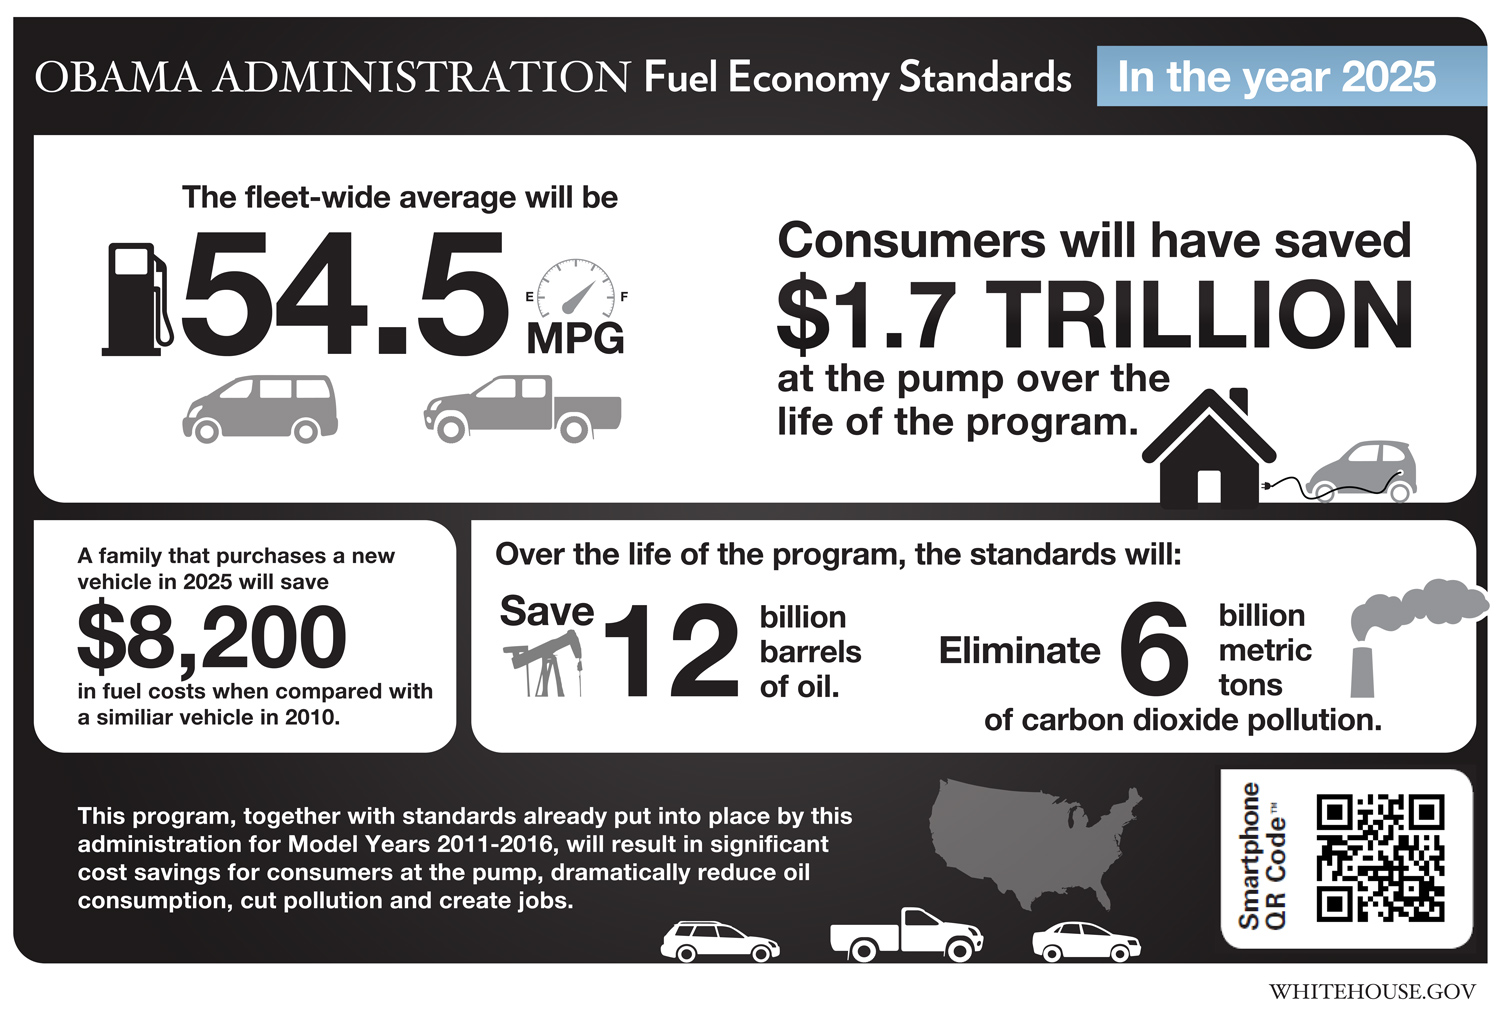 infographic_fuel_economy_standards_final_small.jpg